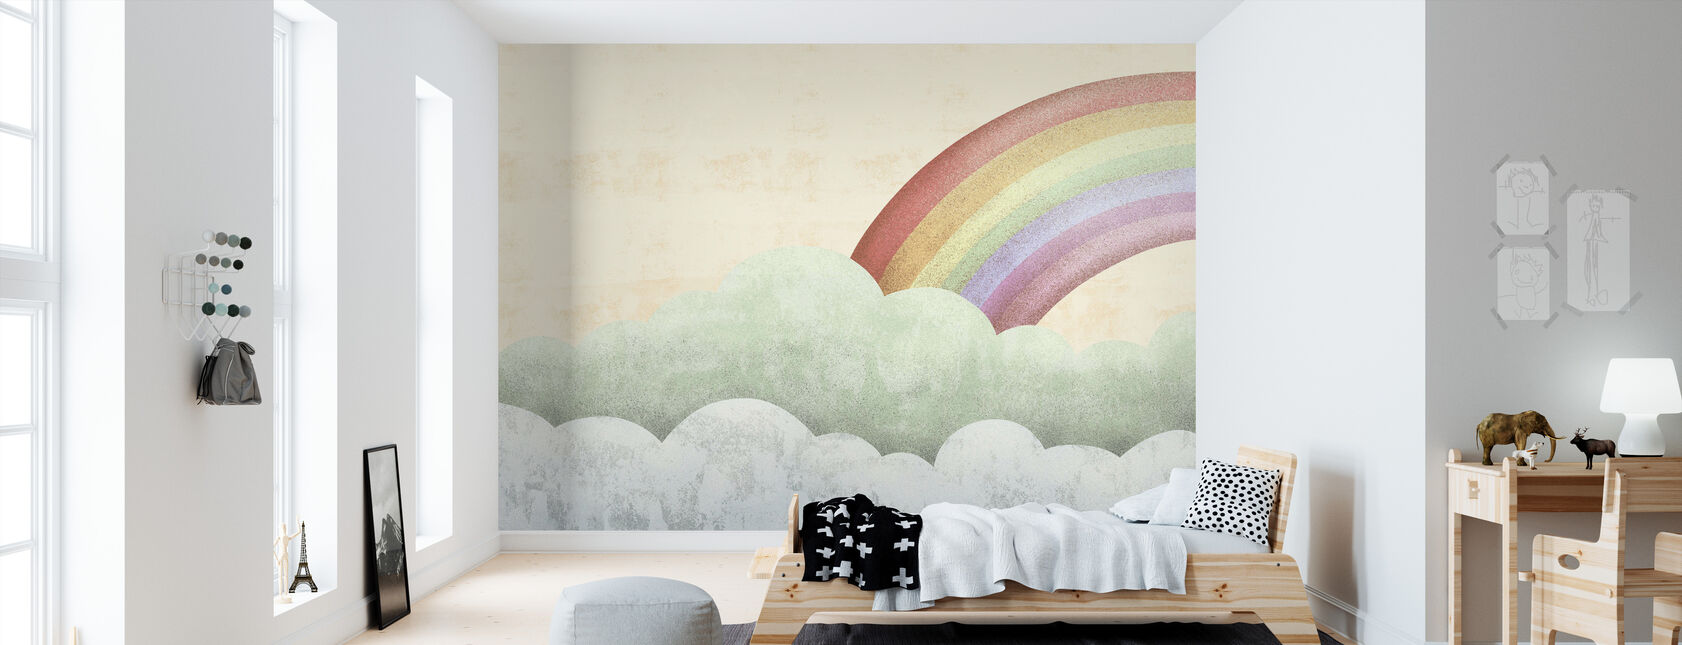 rainbow - Wallpaper - Kids Room